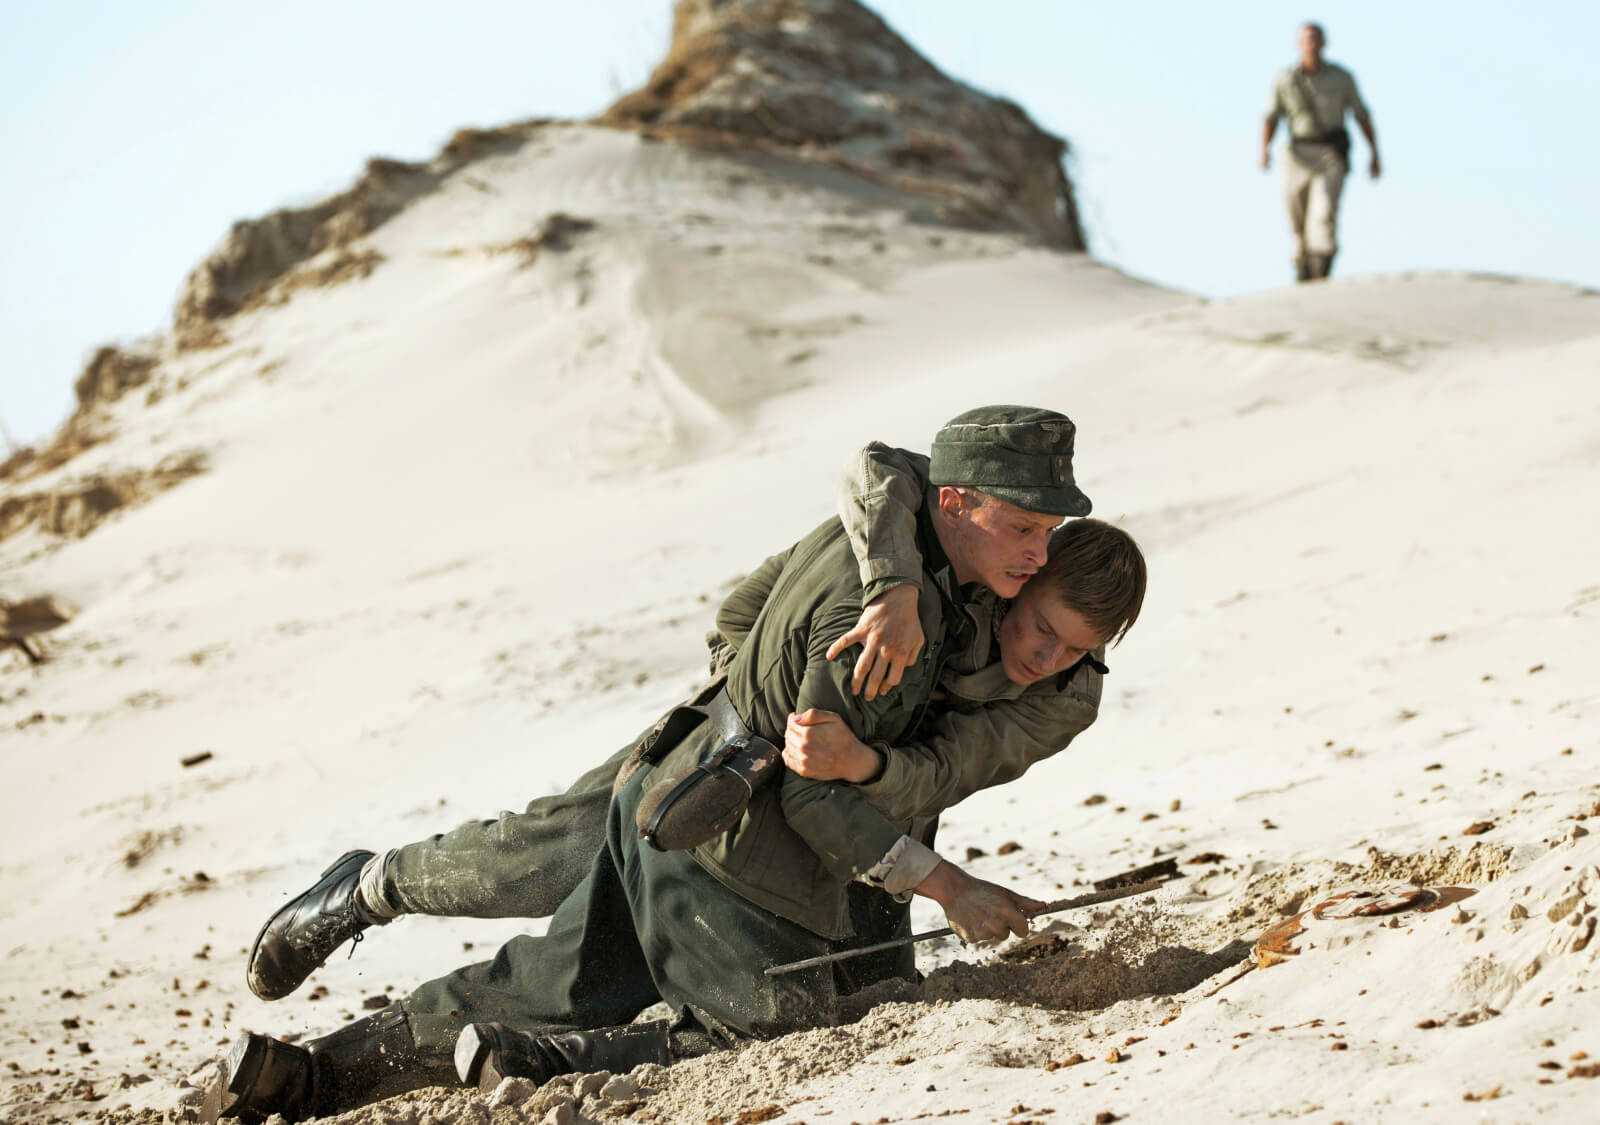 Video still from Land of Mine